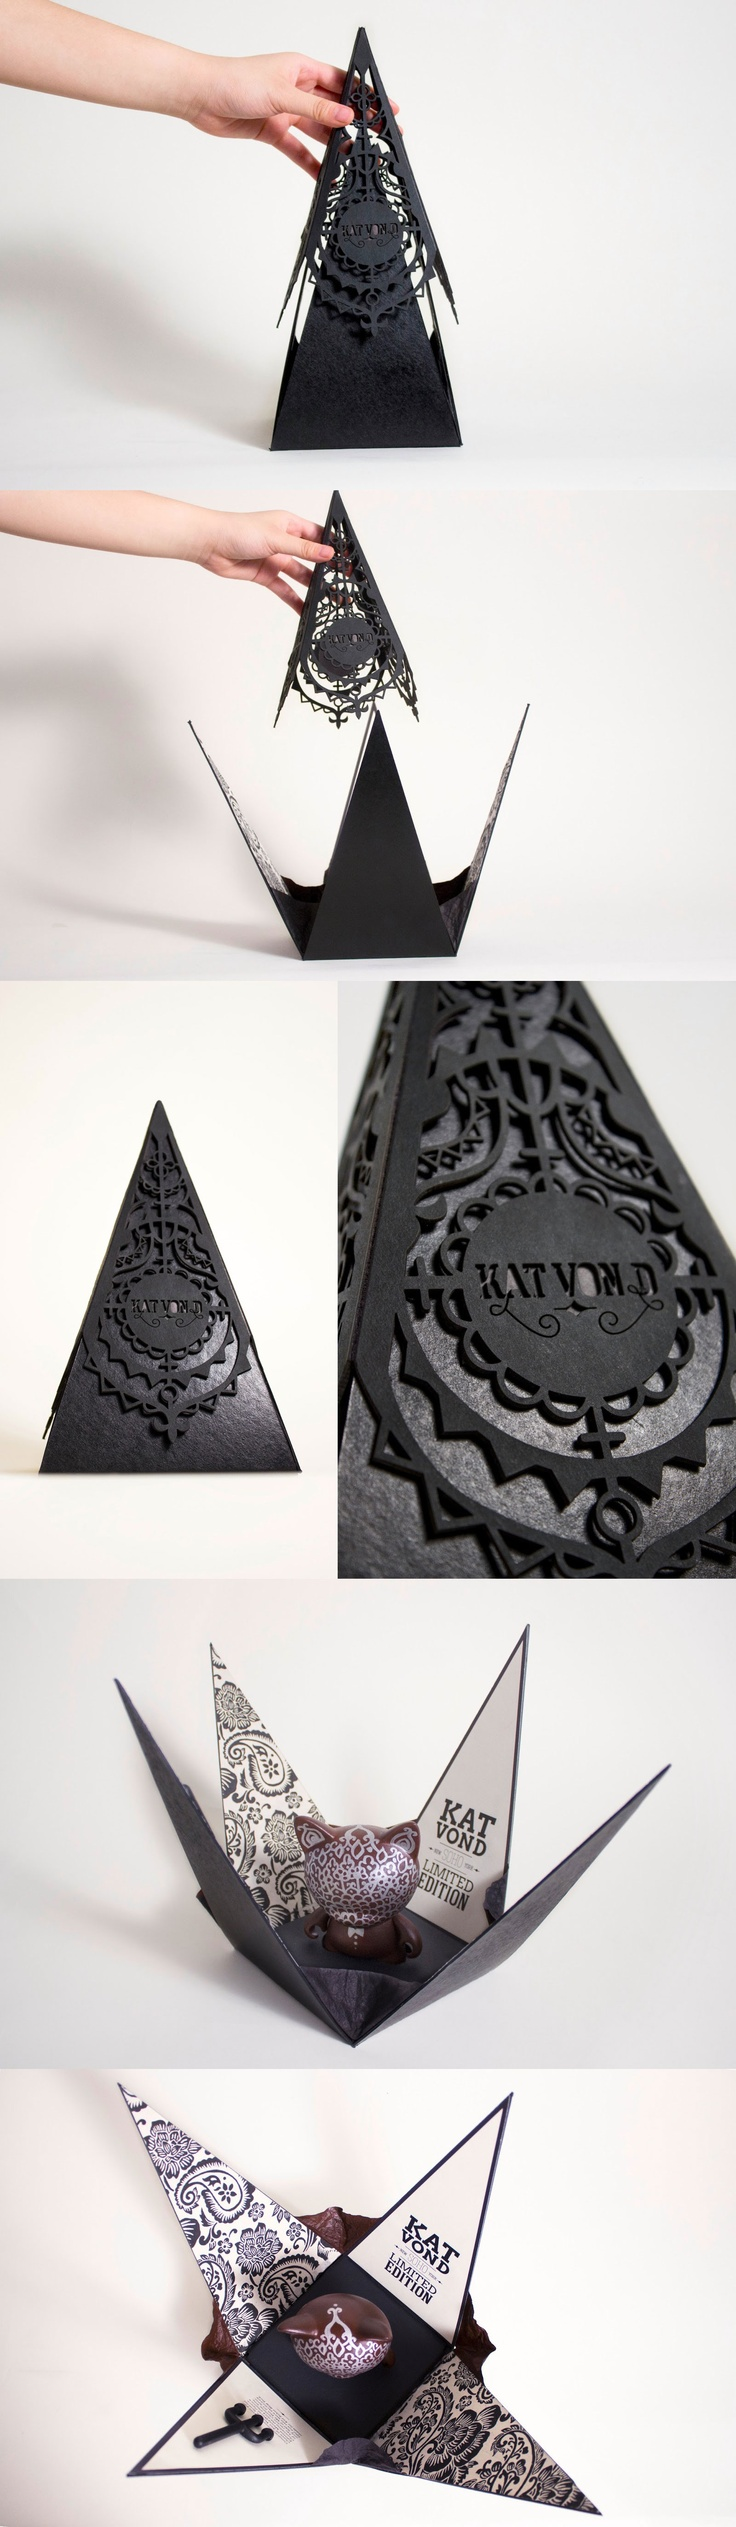 MeiCheng Wang, for limited edition KidRobot customizable figure by Kat Von D. Gothic laser cut.